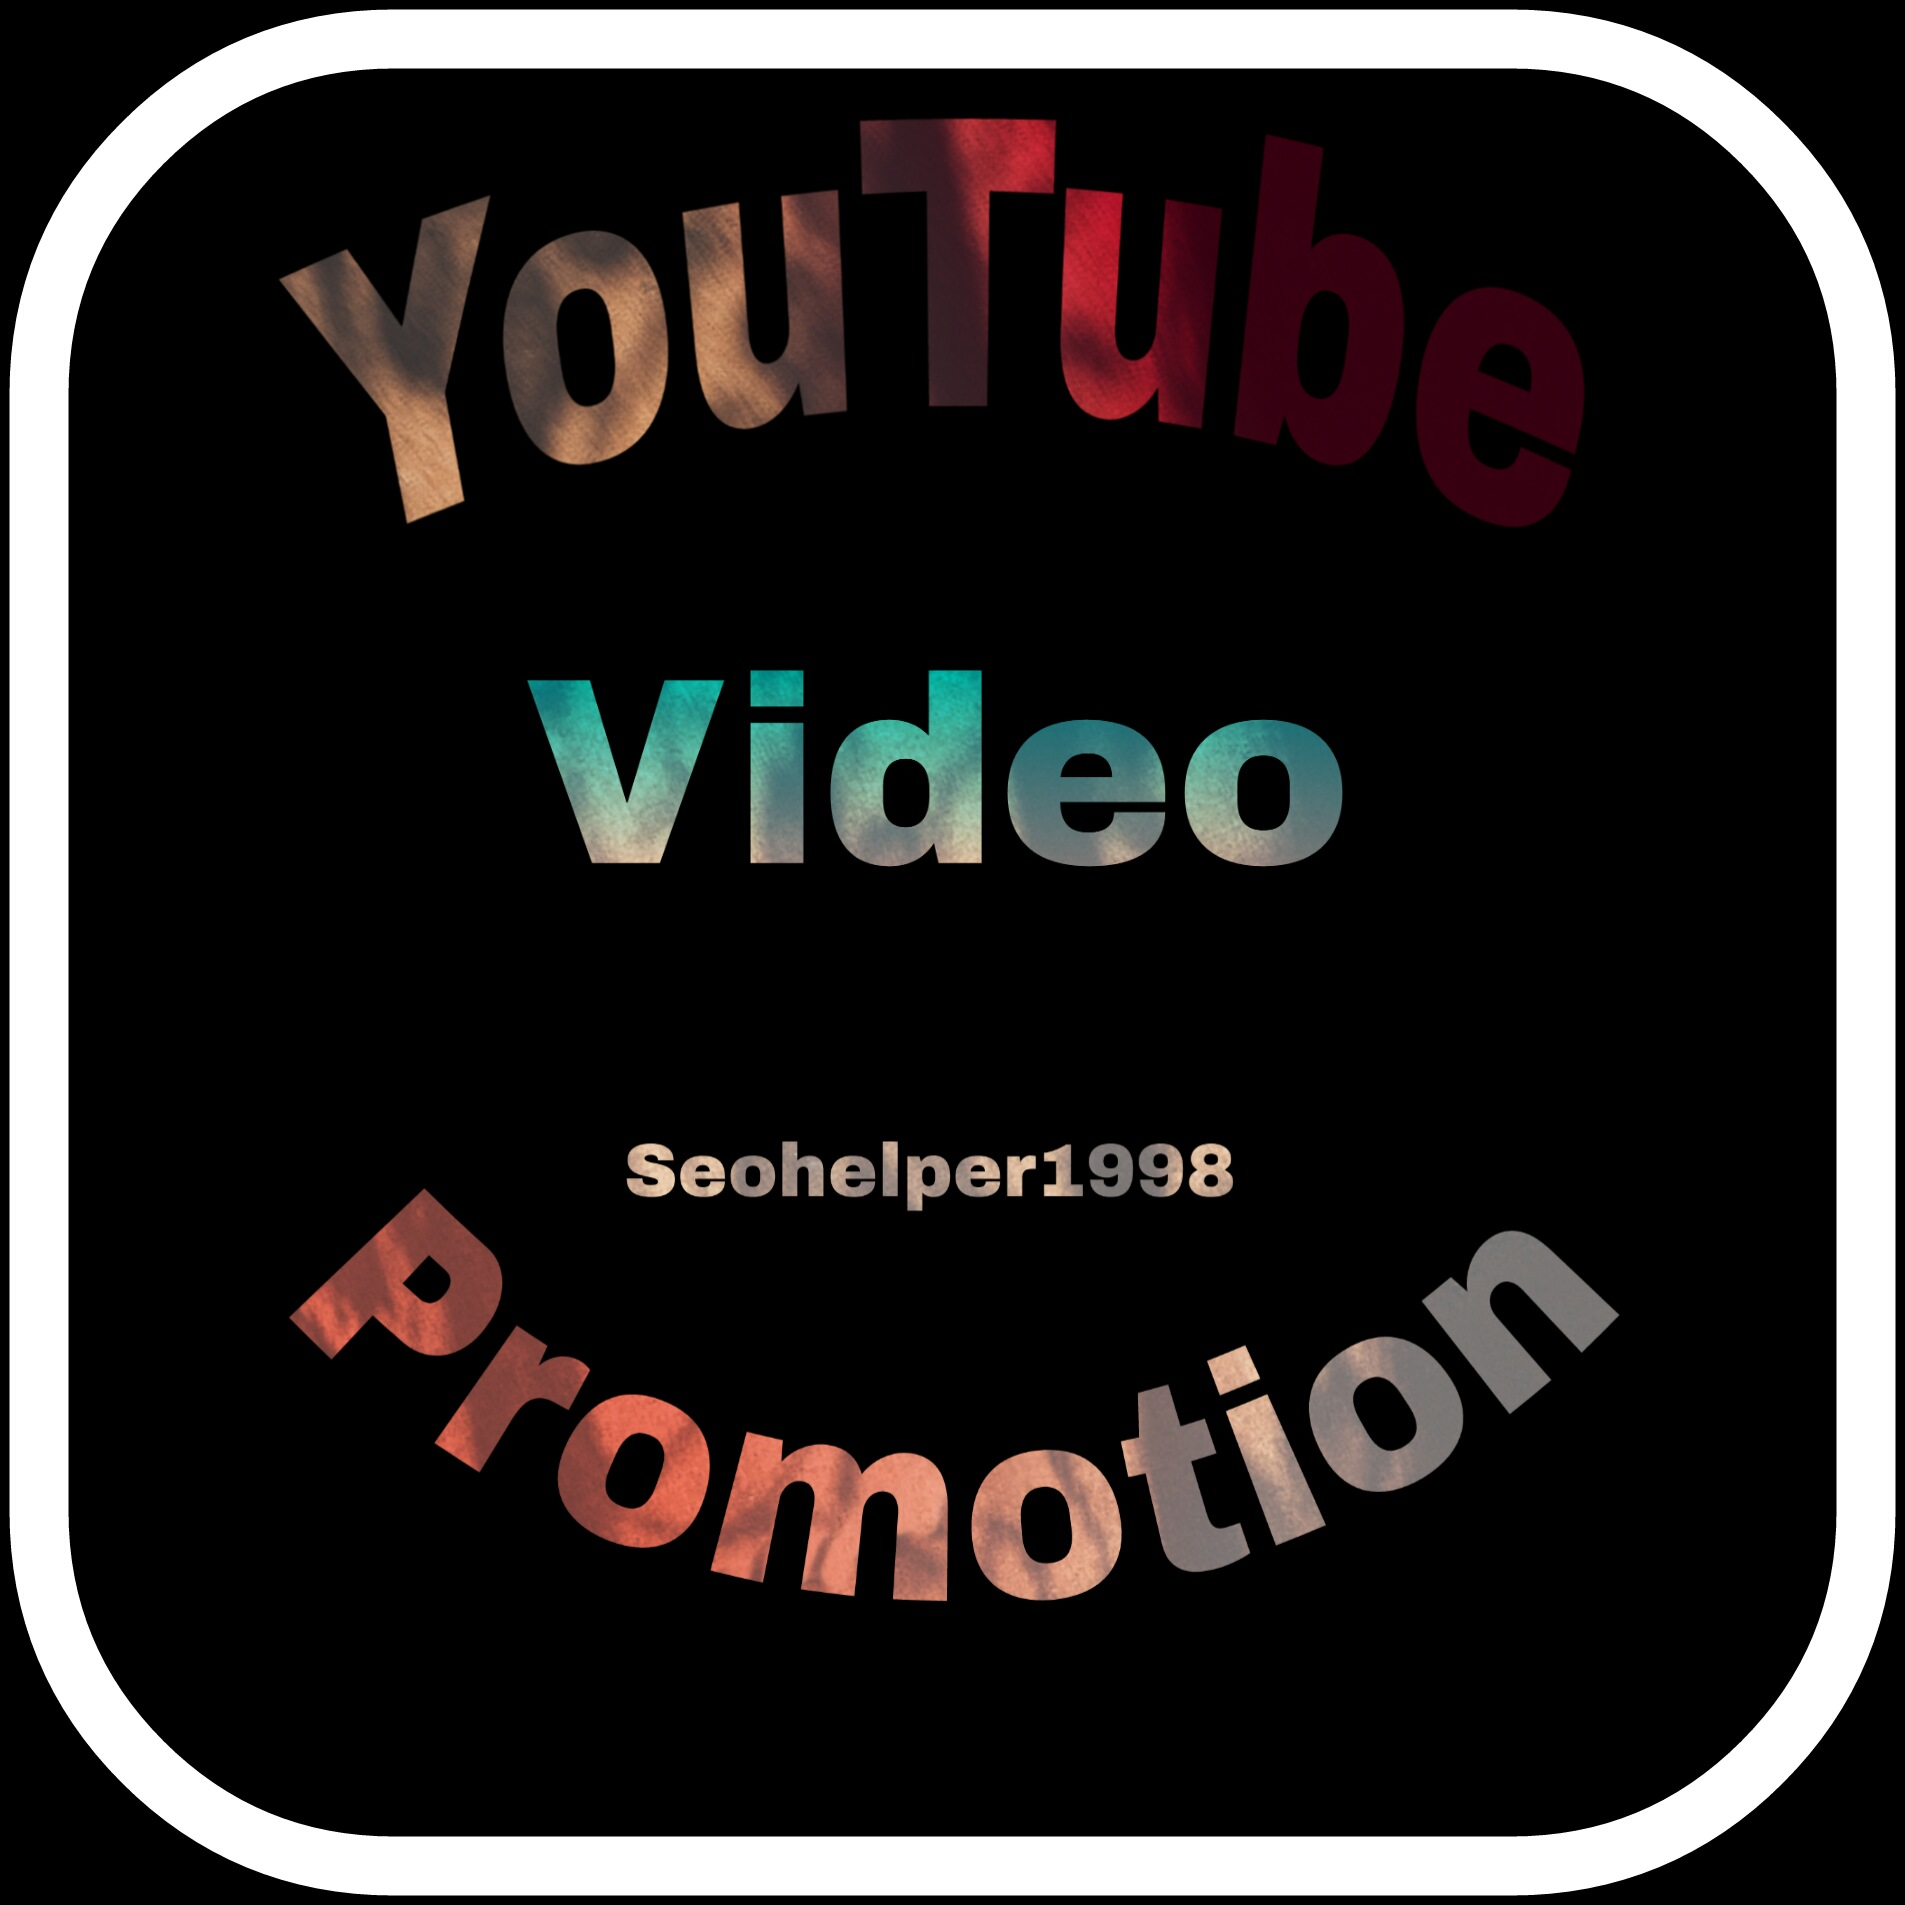 YouTube Package promotion and social media marketing